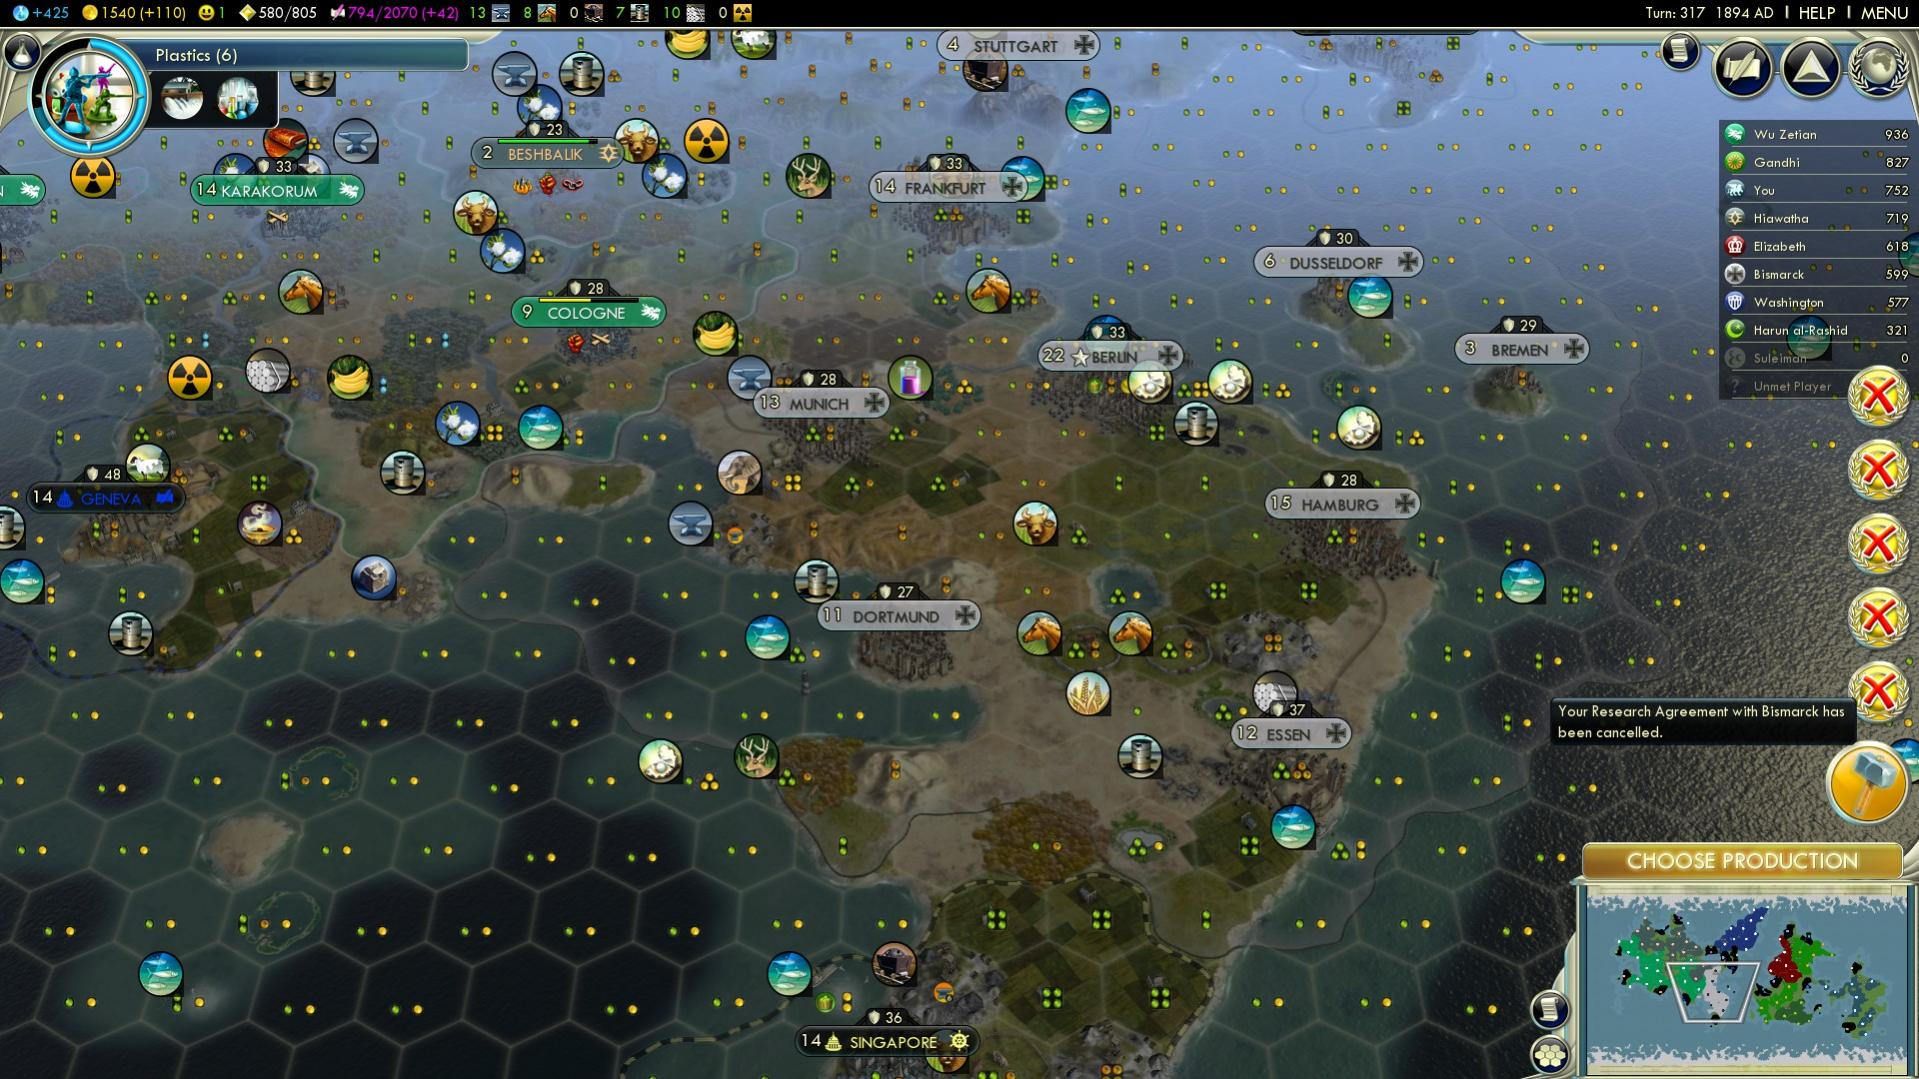 Your Research Agreement With X Has Been Cancelled Civfanatics Forums